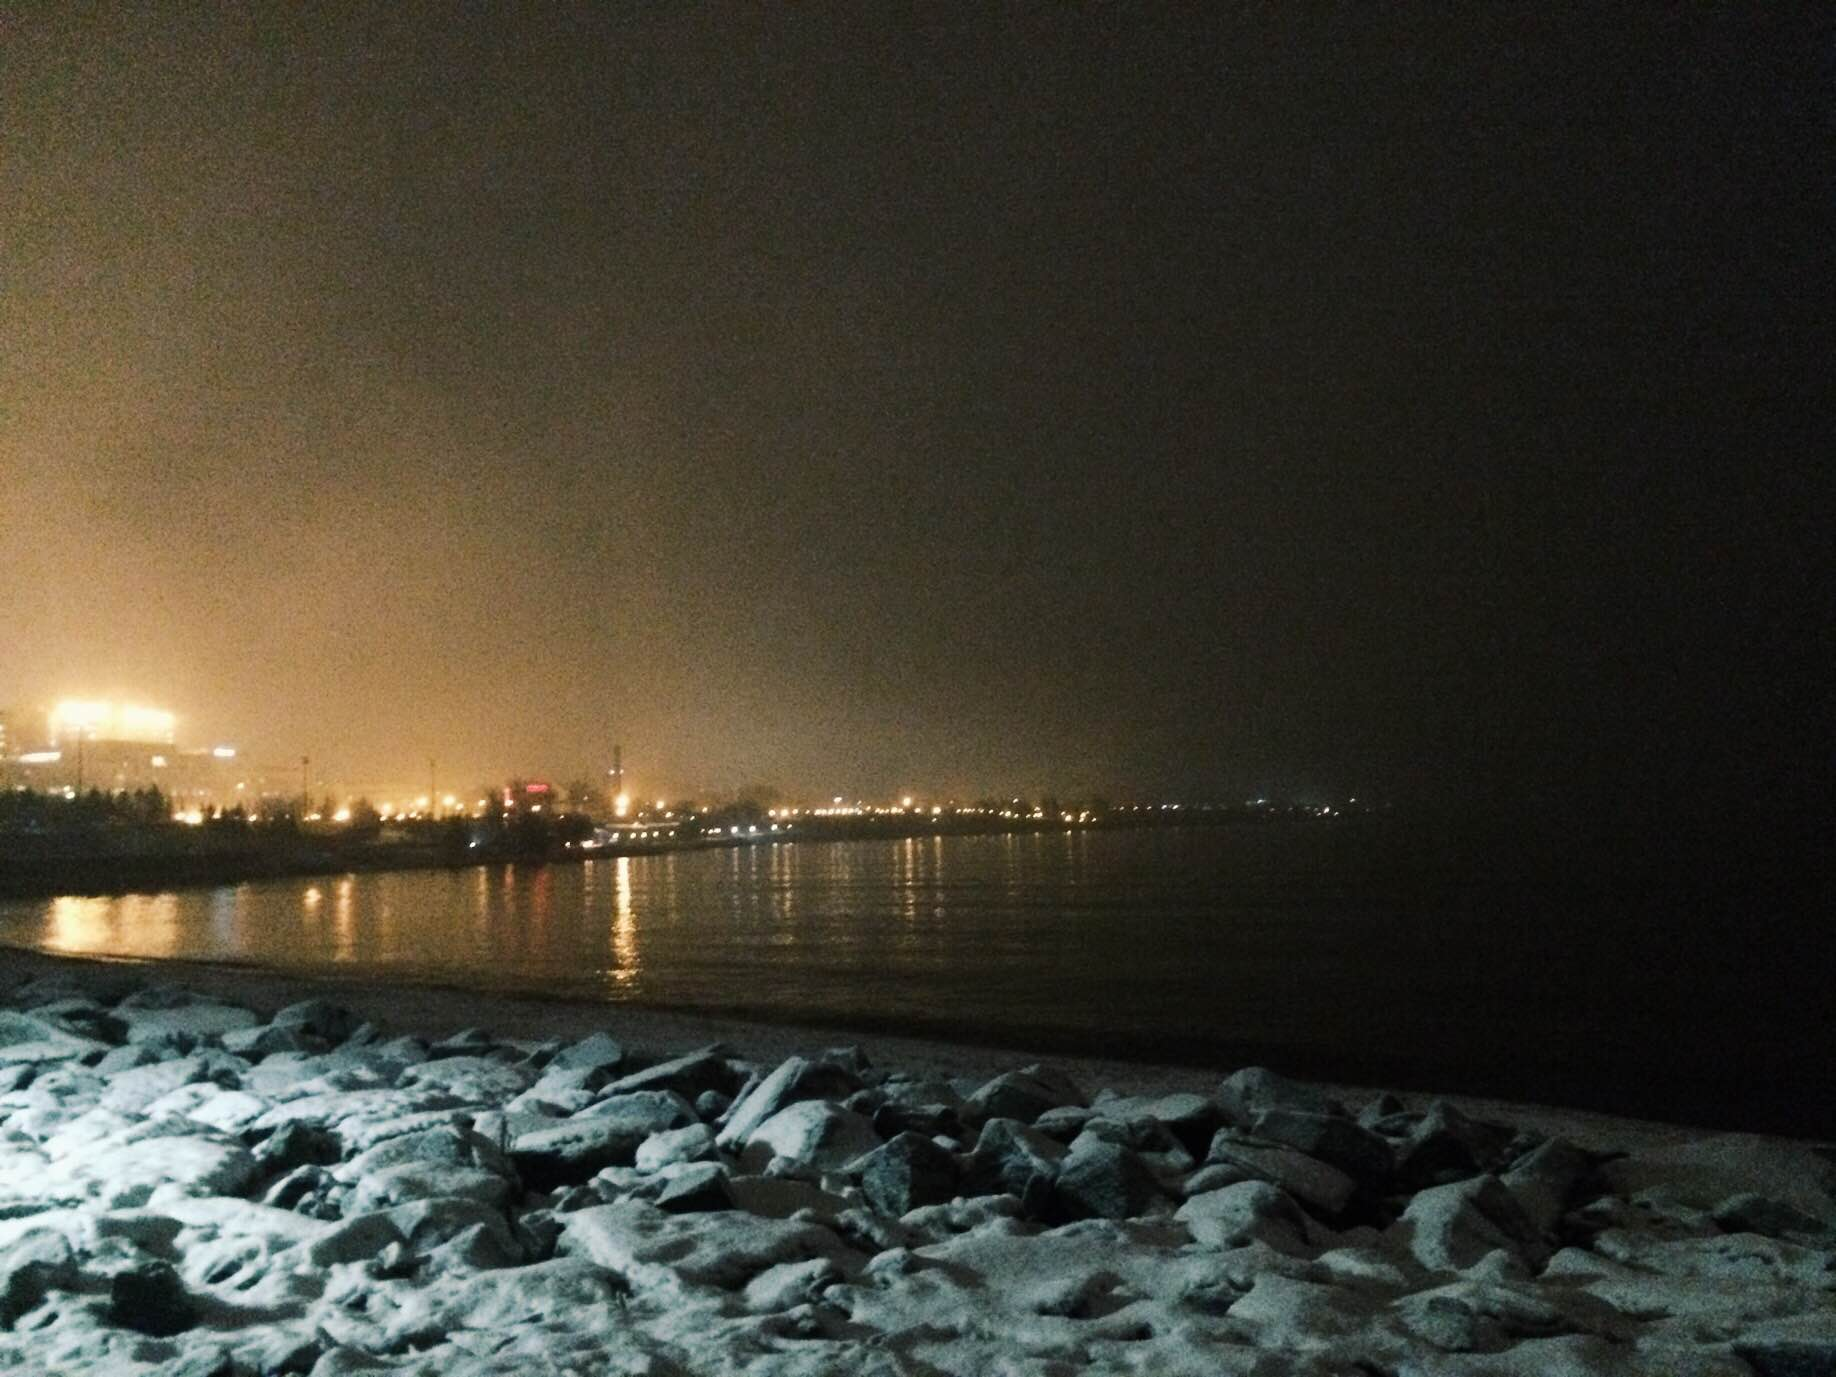 Lakewalk Duluth MN in winter